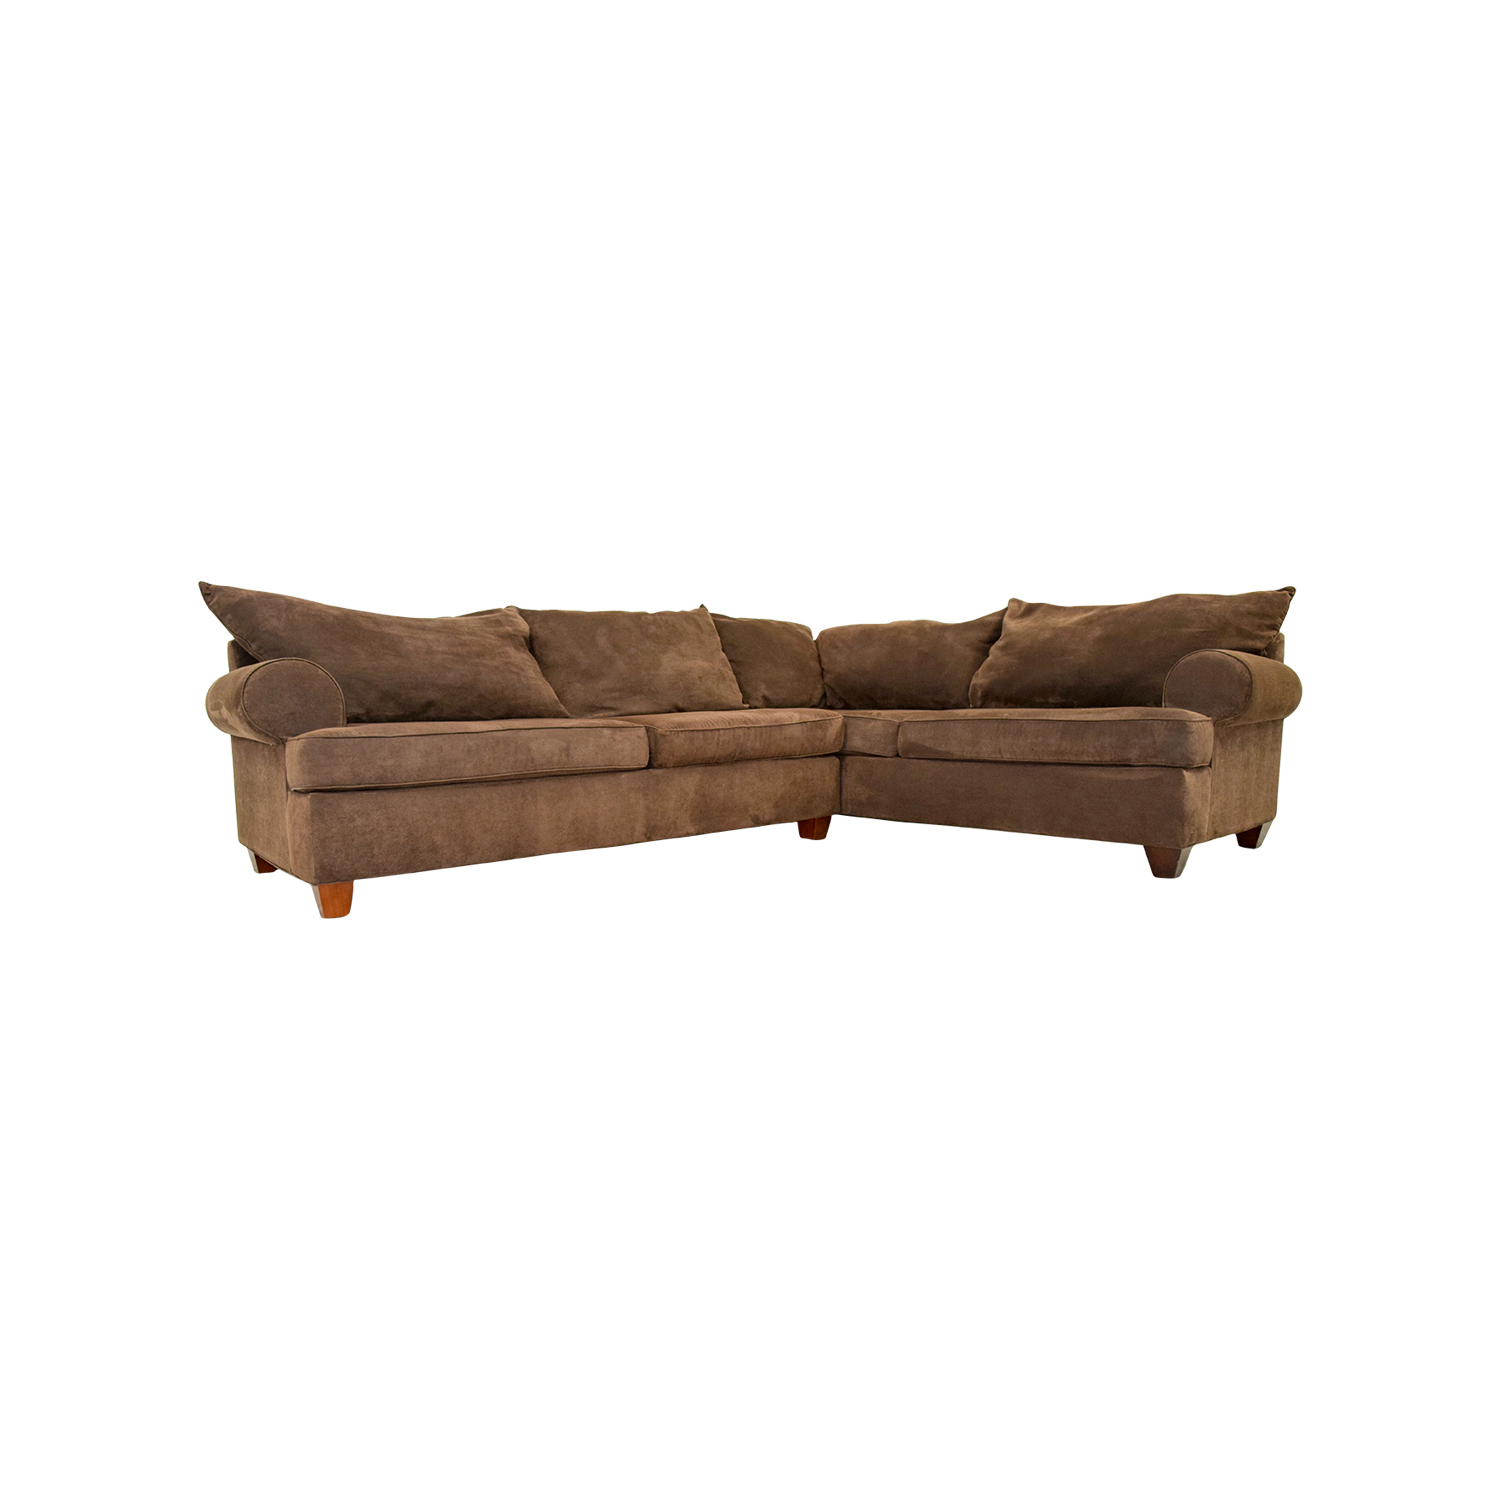 Marvelous 75 Off Brown Corduroy L Shaped Sectional Couch Sofas Creativecarmelina Interior Chair Design Creativecarmelinacom